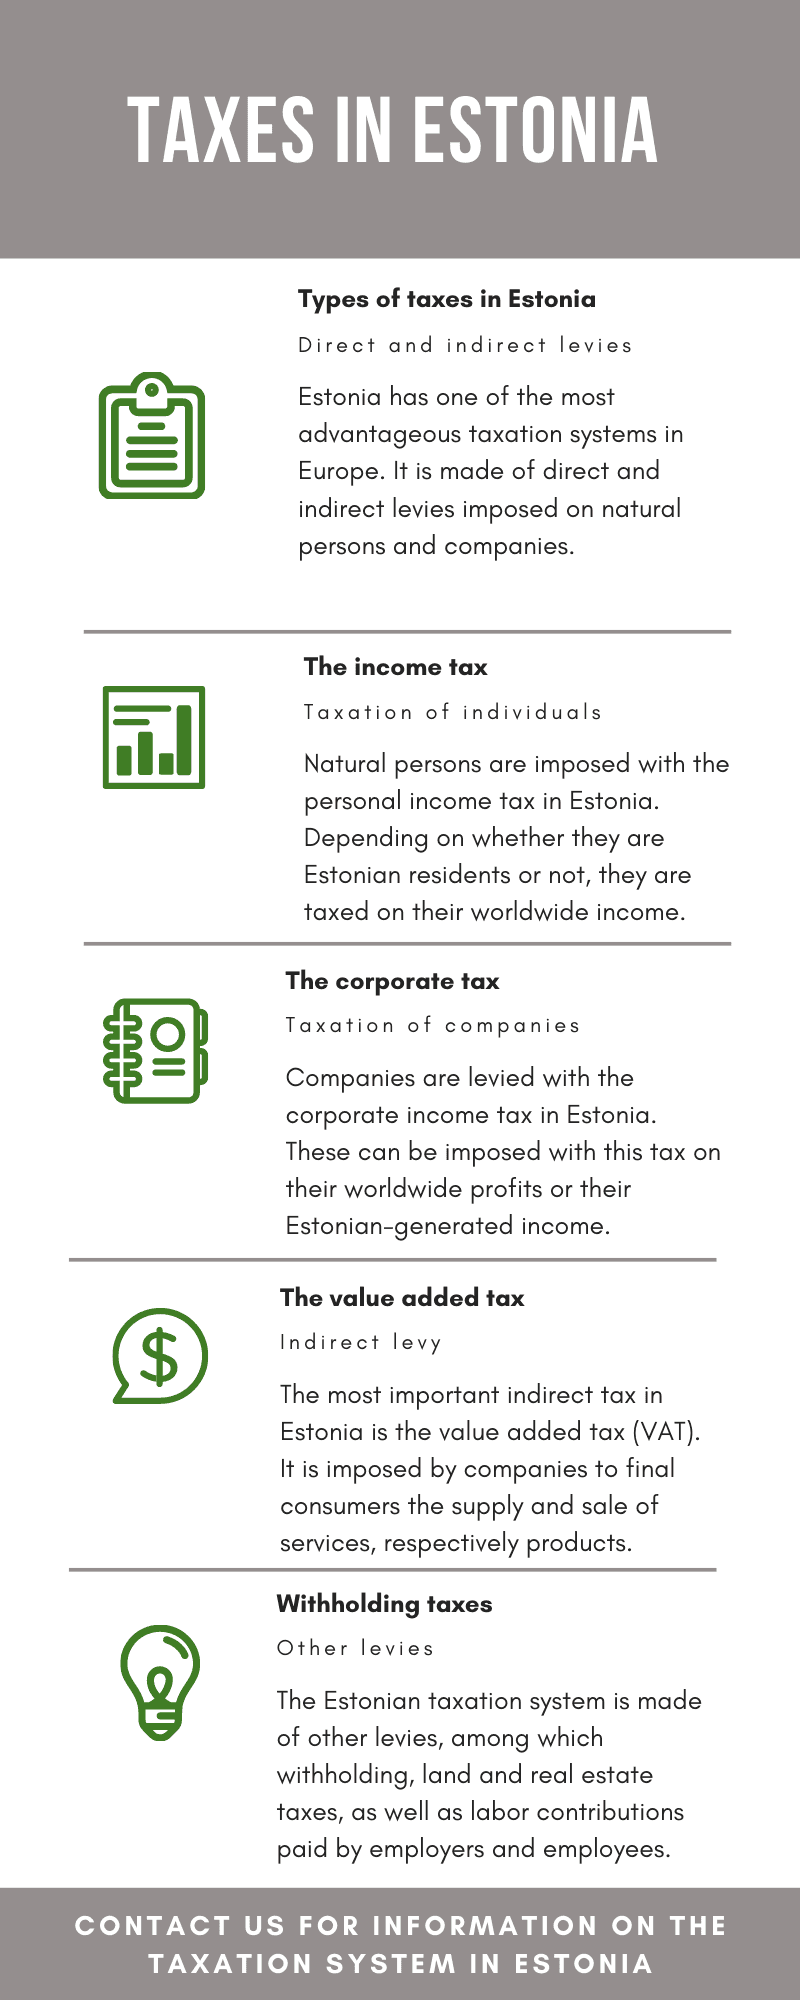 Taxes in Estonia